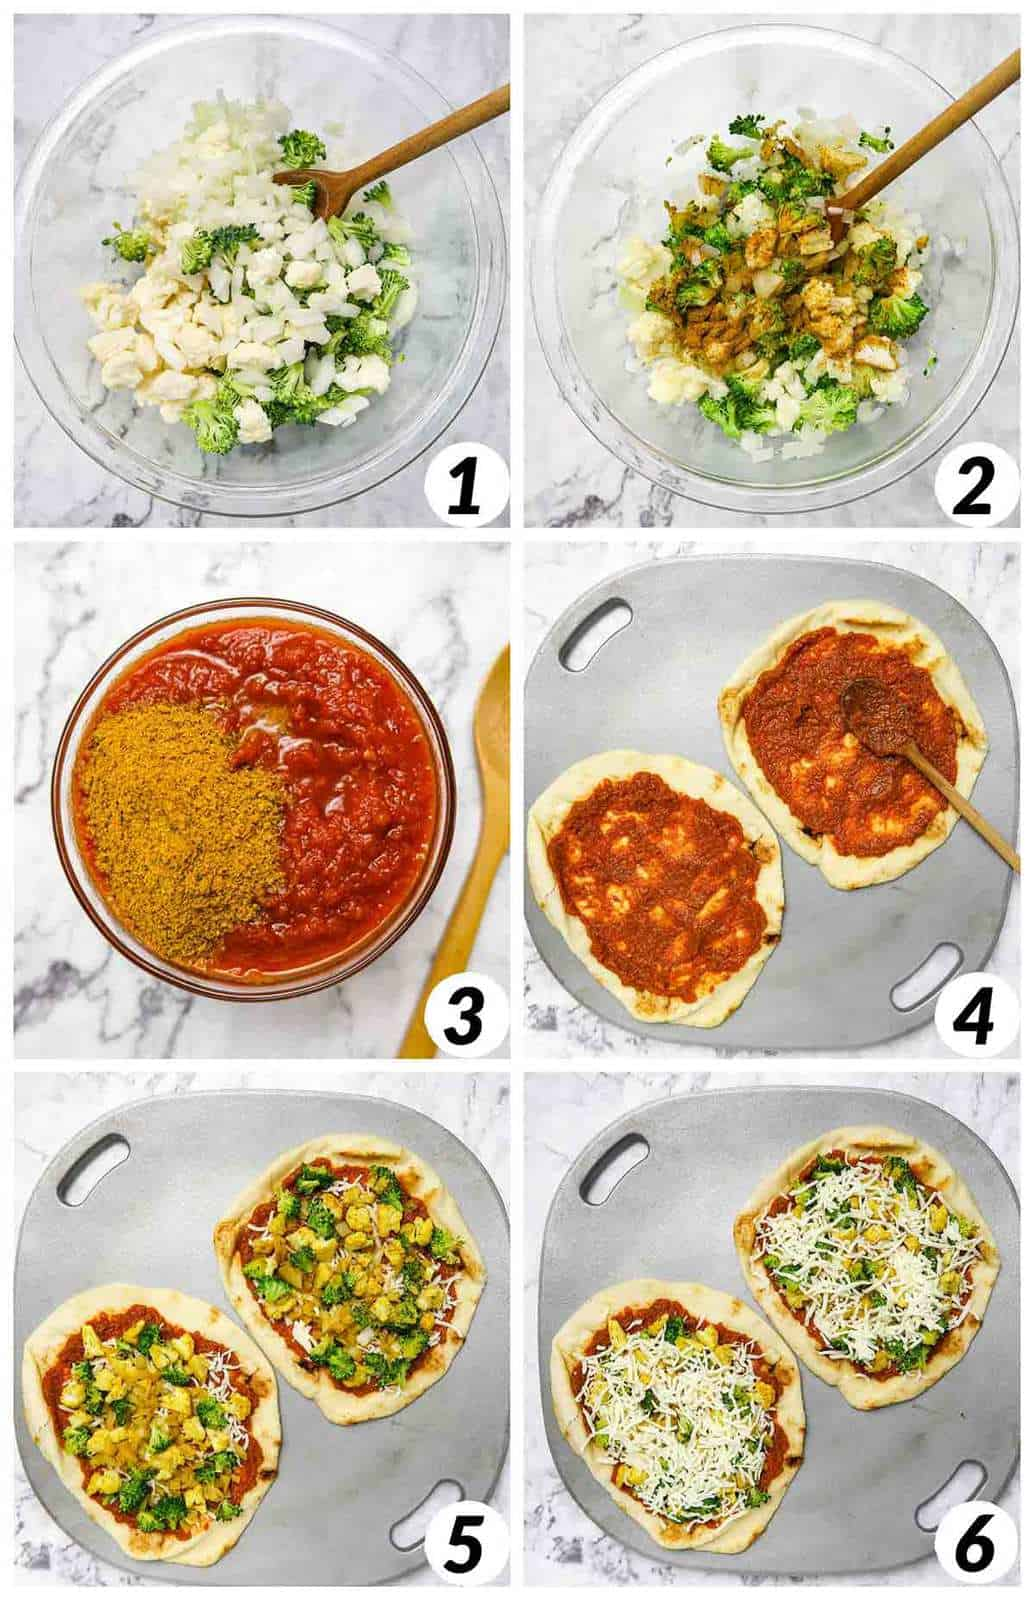 Six panel grid of process shots- mixing together ingredients, forming pizzas, and cooking the pizzas.